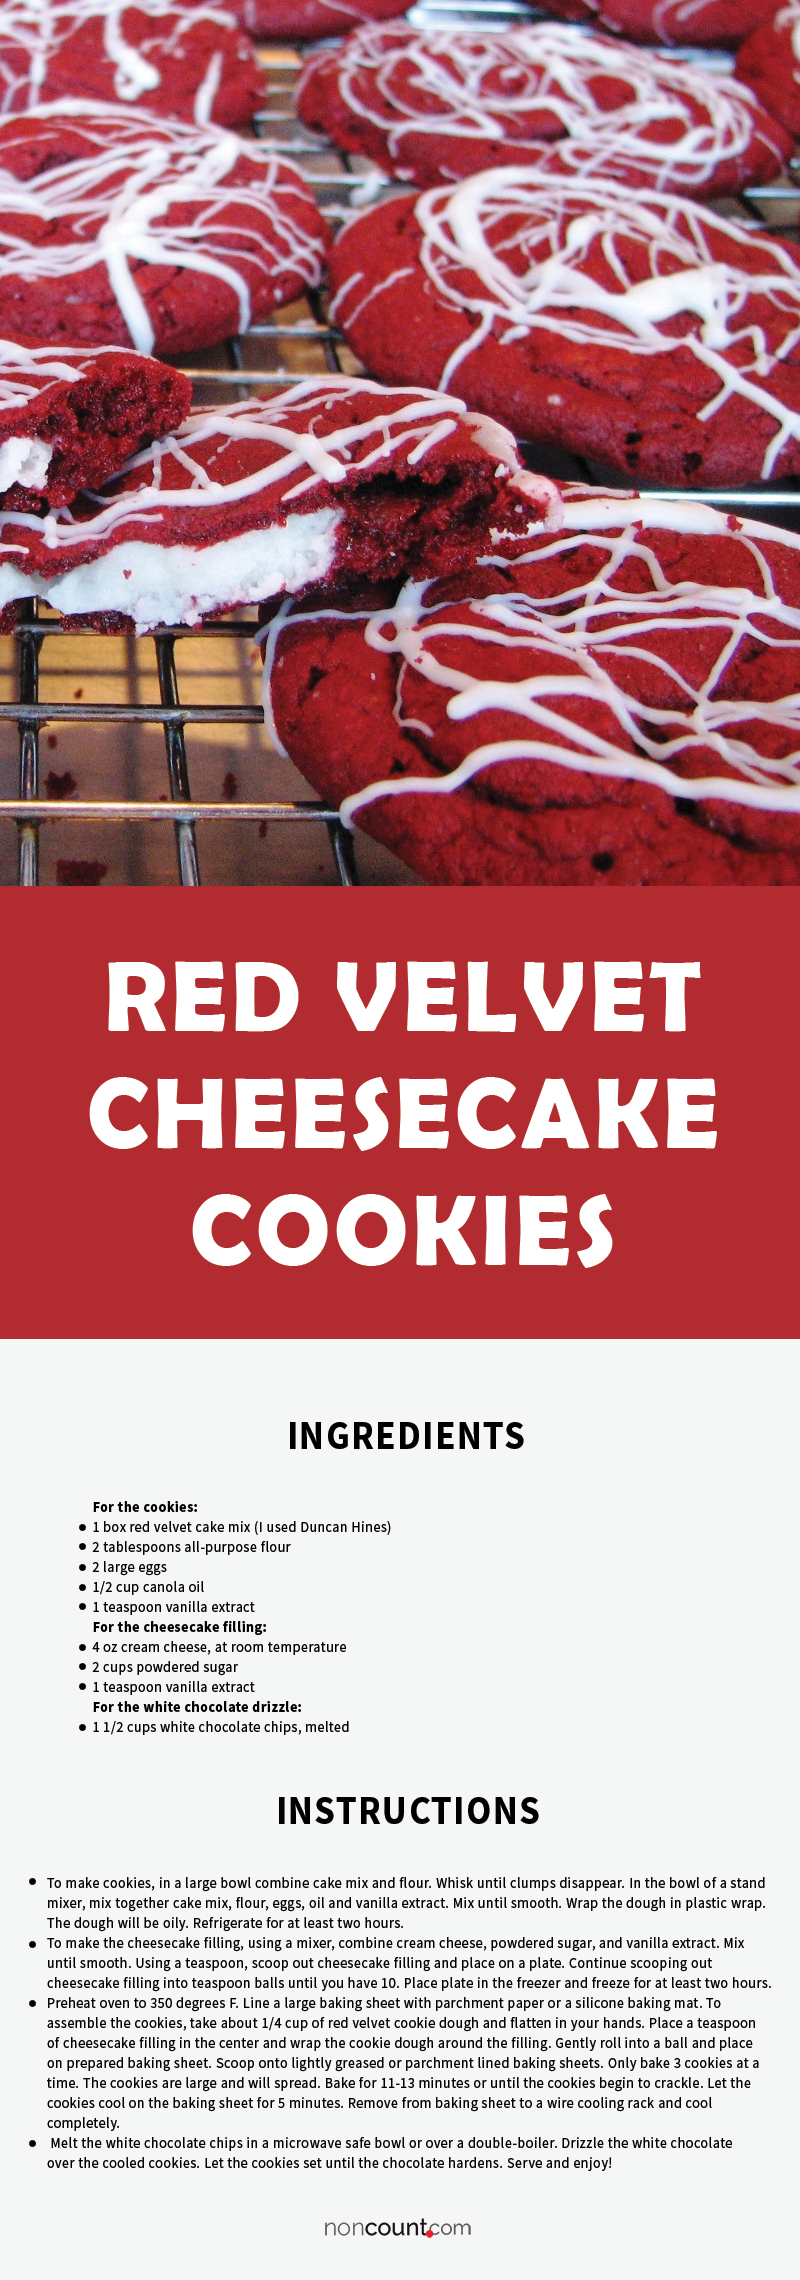 Red Velvet Cheesecake Cookies Recipe Image